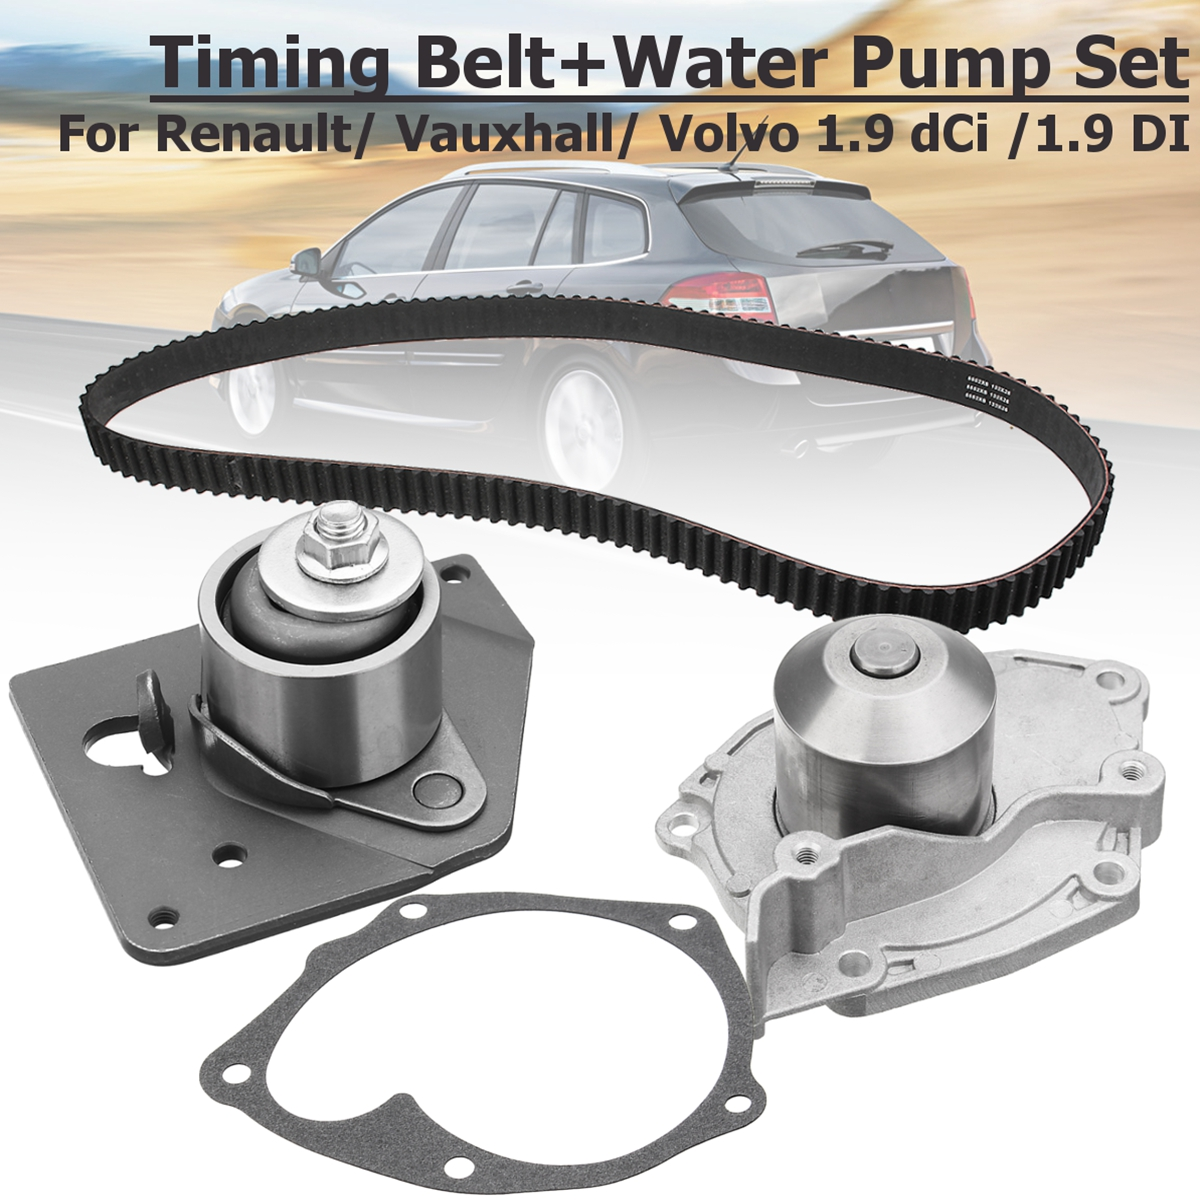 201523385842 GATES KP15552XS Timing Belt+Water Pump Set For Renault for Vauxhall for Volvo 1.9 dCi for 1.9 DI Engines